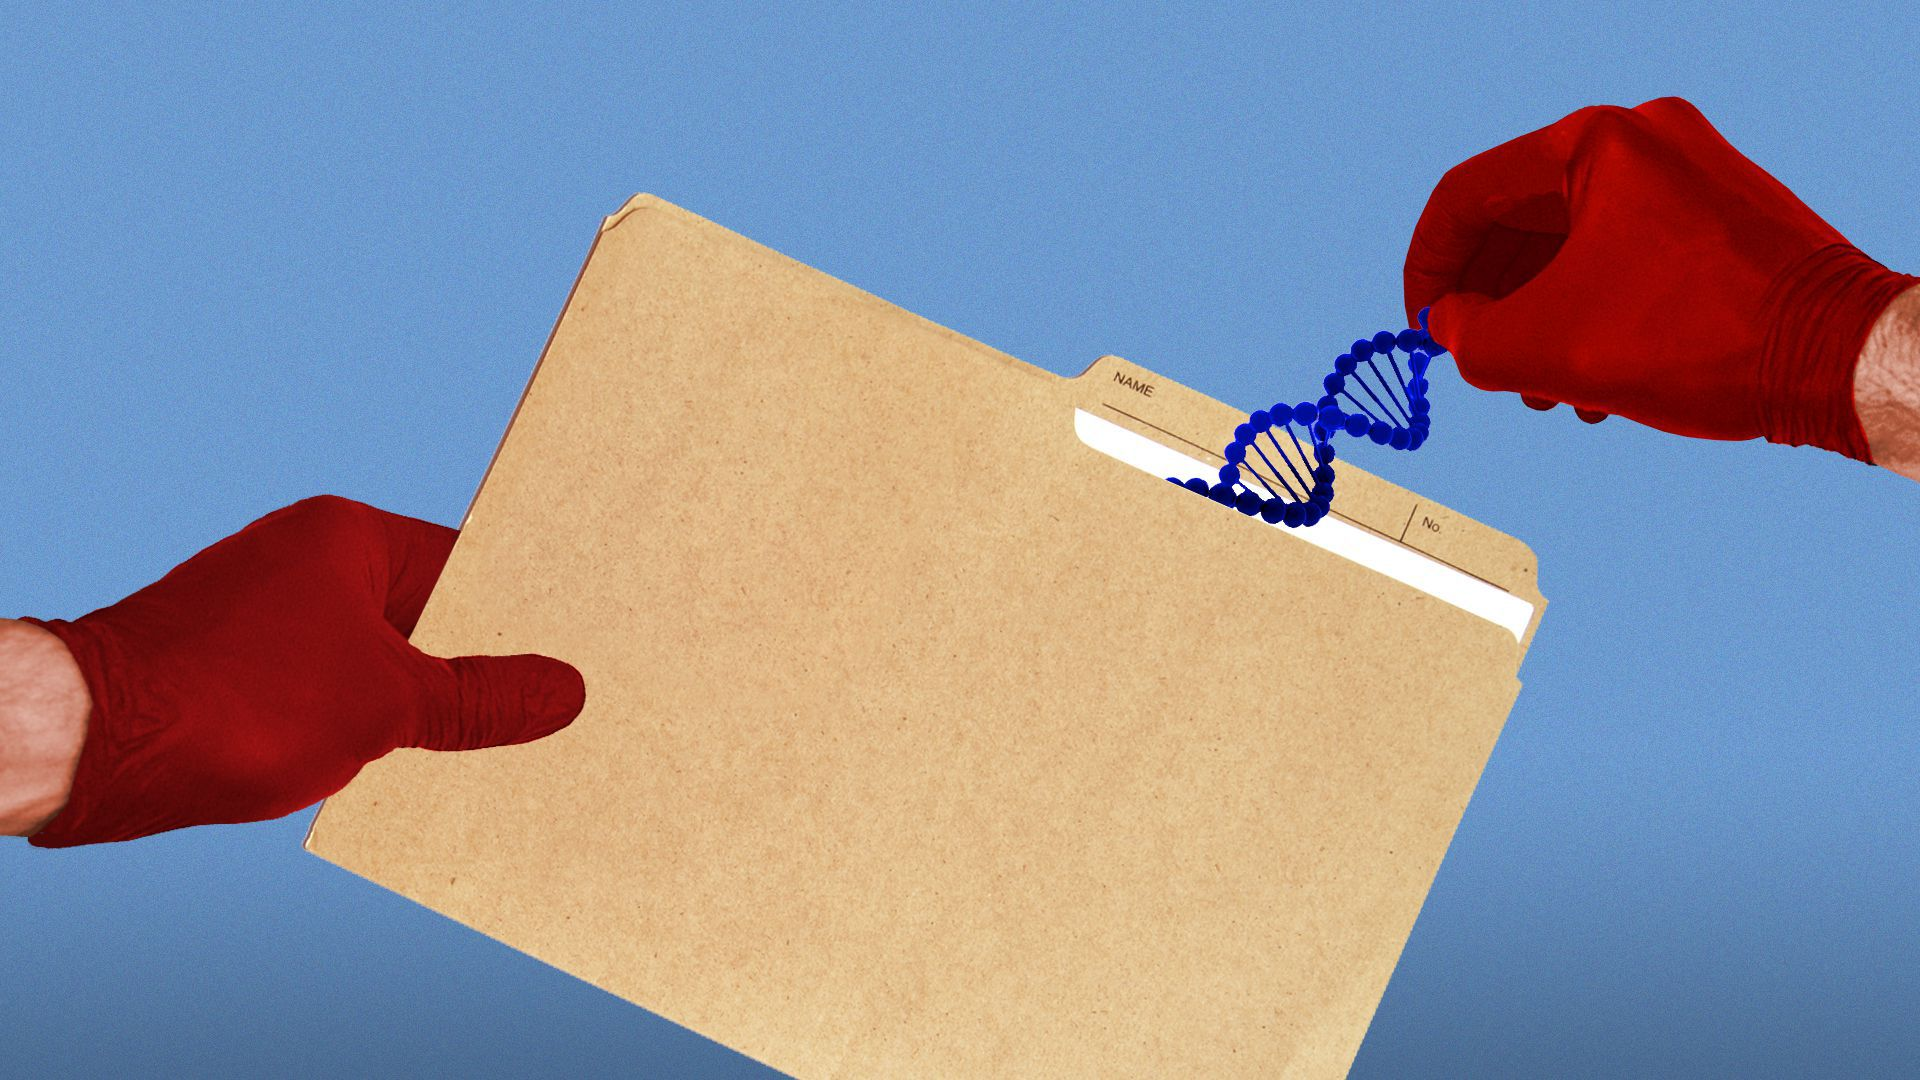 Illustration of hands with medical gloves placing a DNA strand in a folder